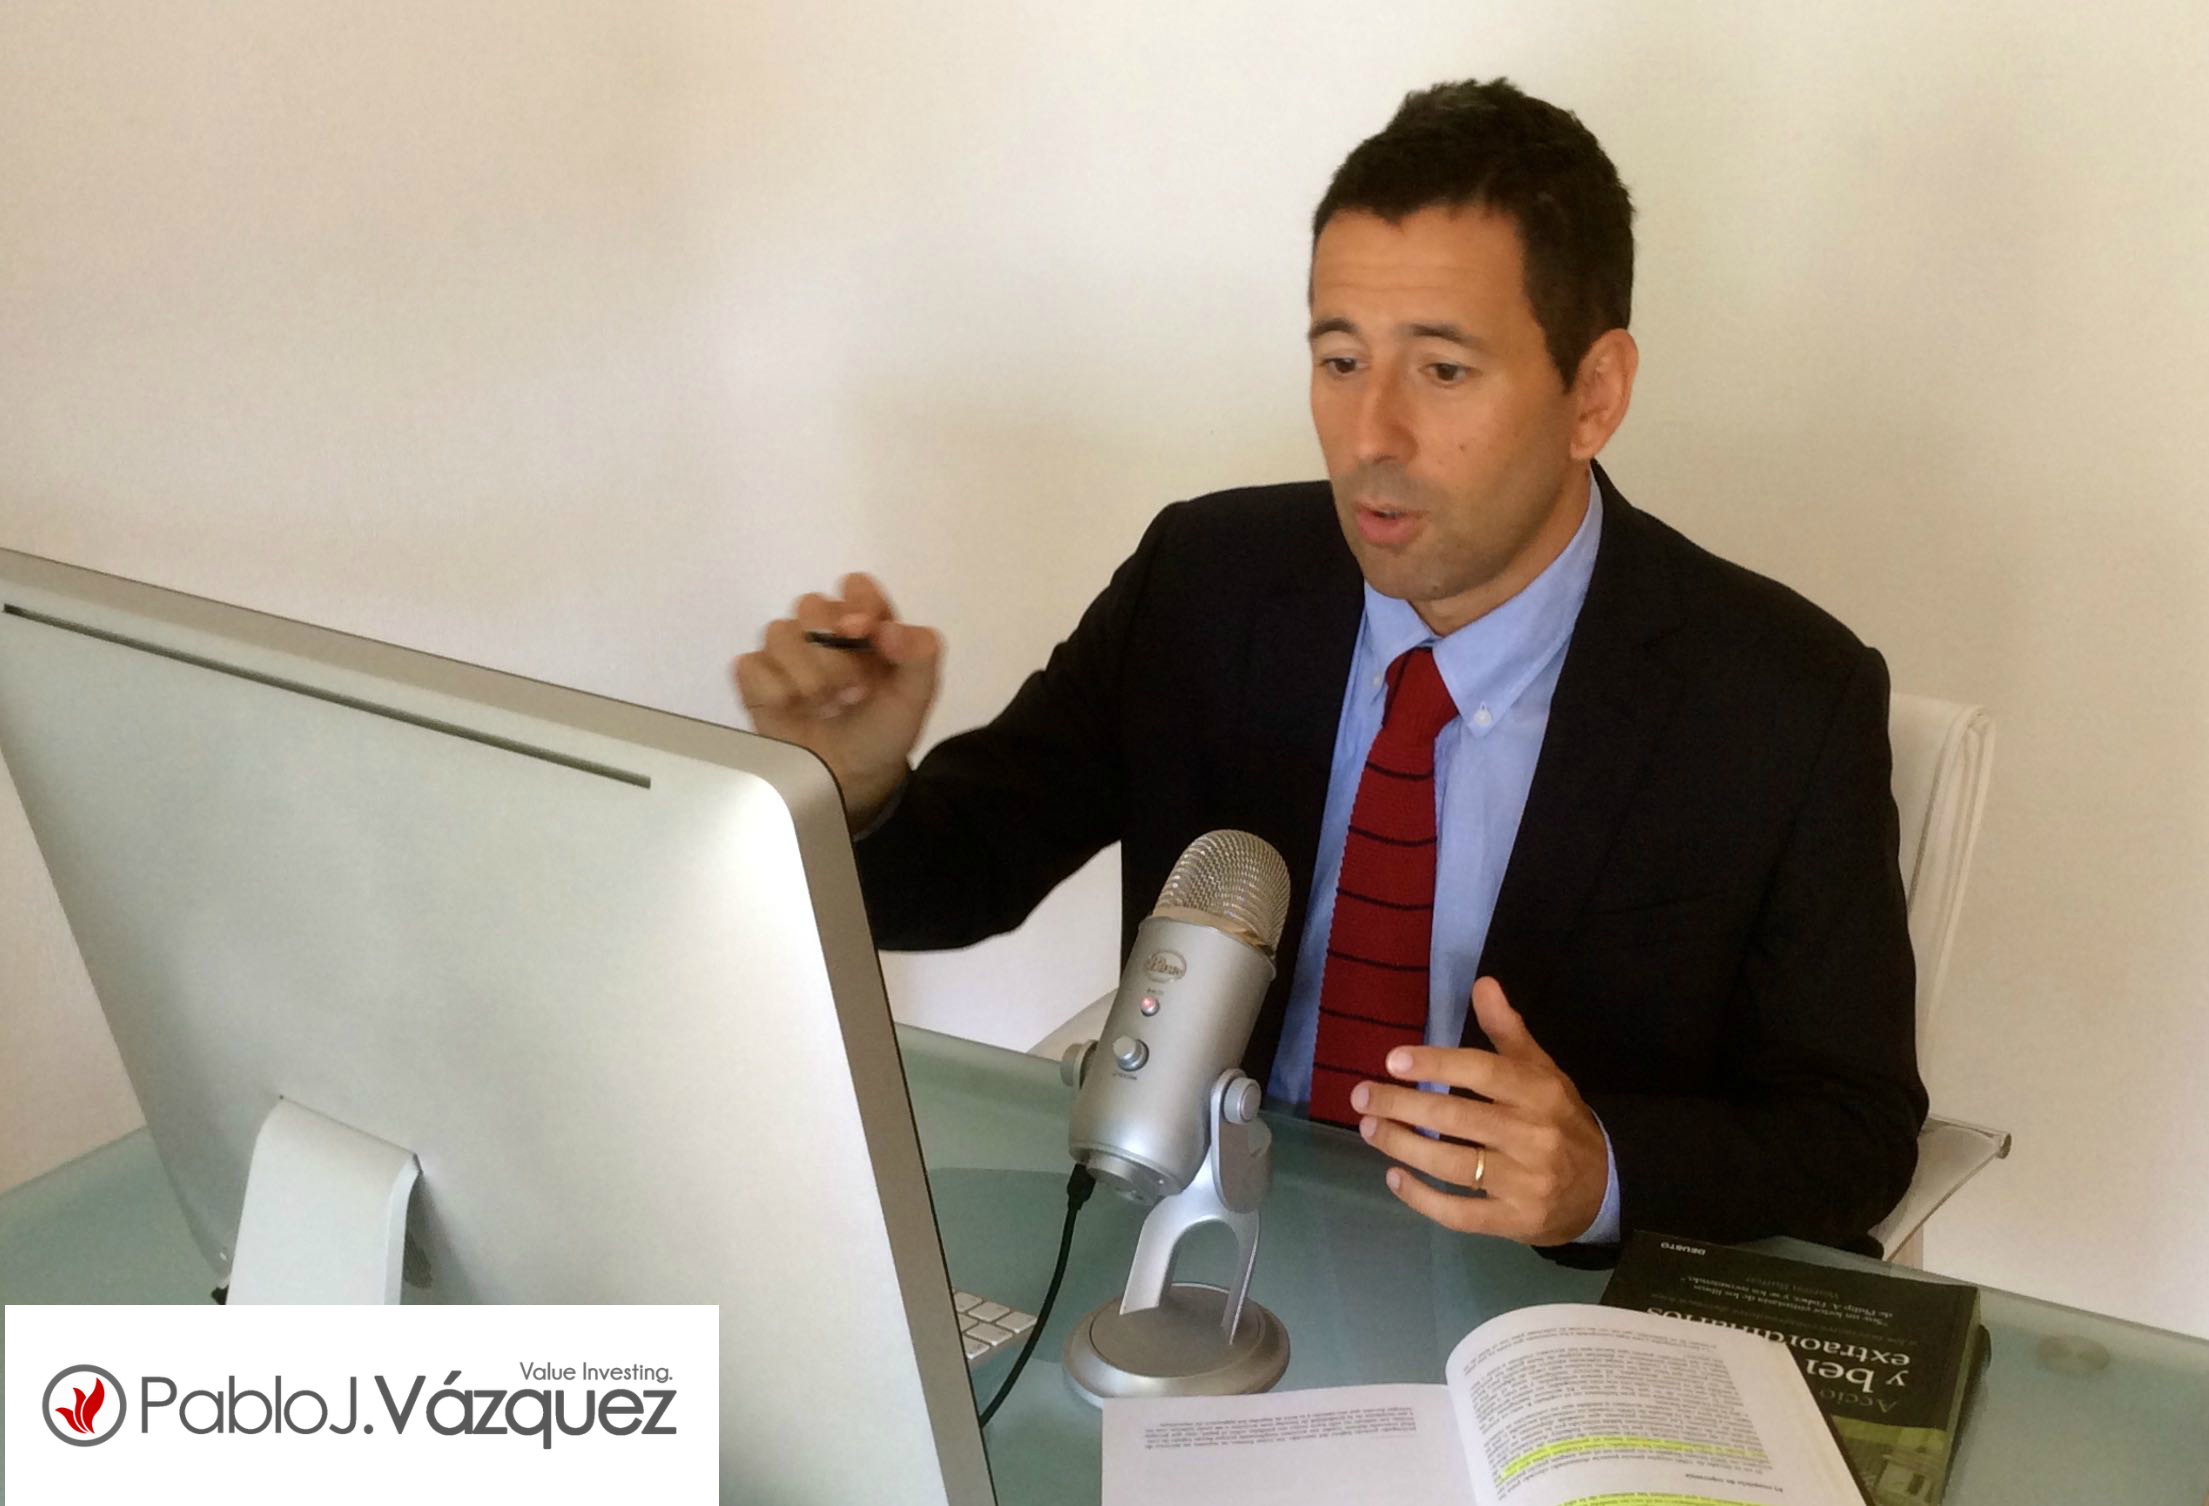 pablo j vazquez curso bolsa value investing